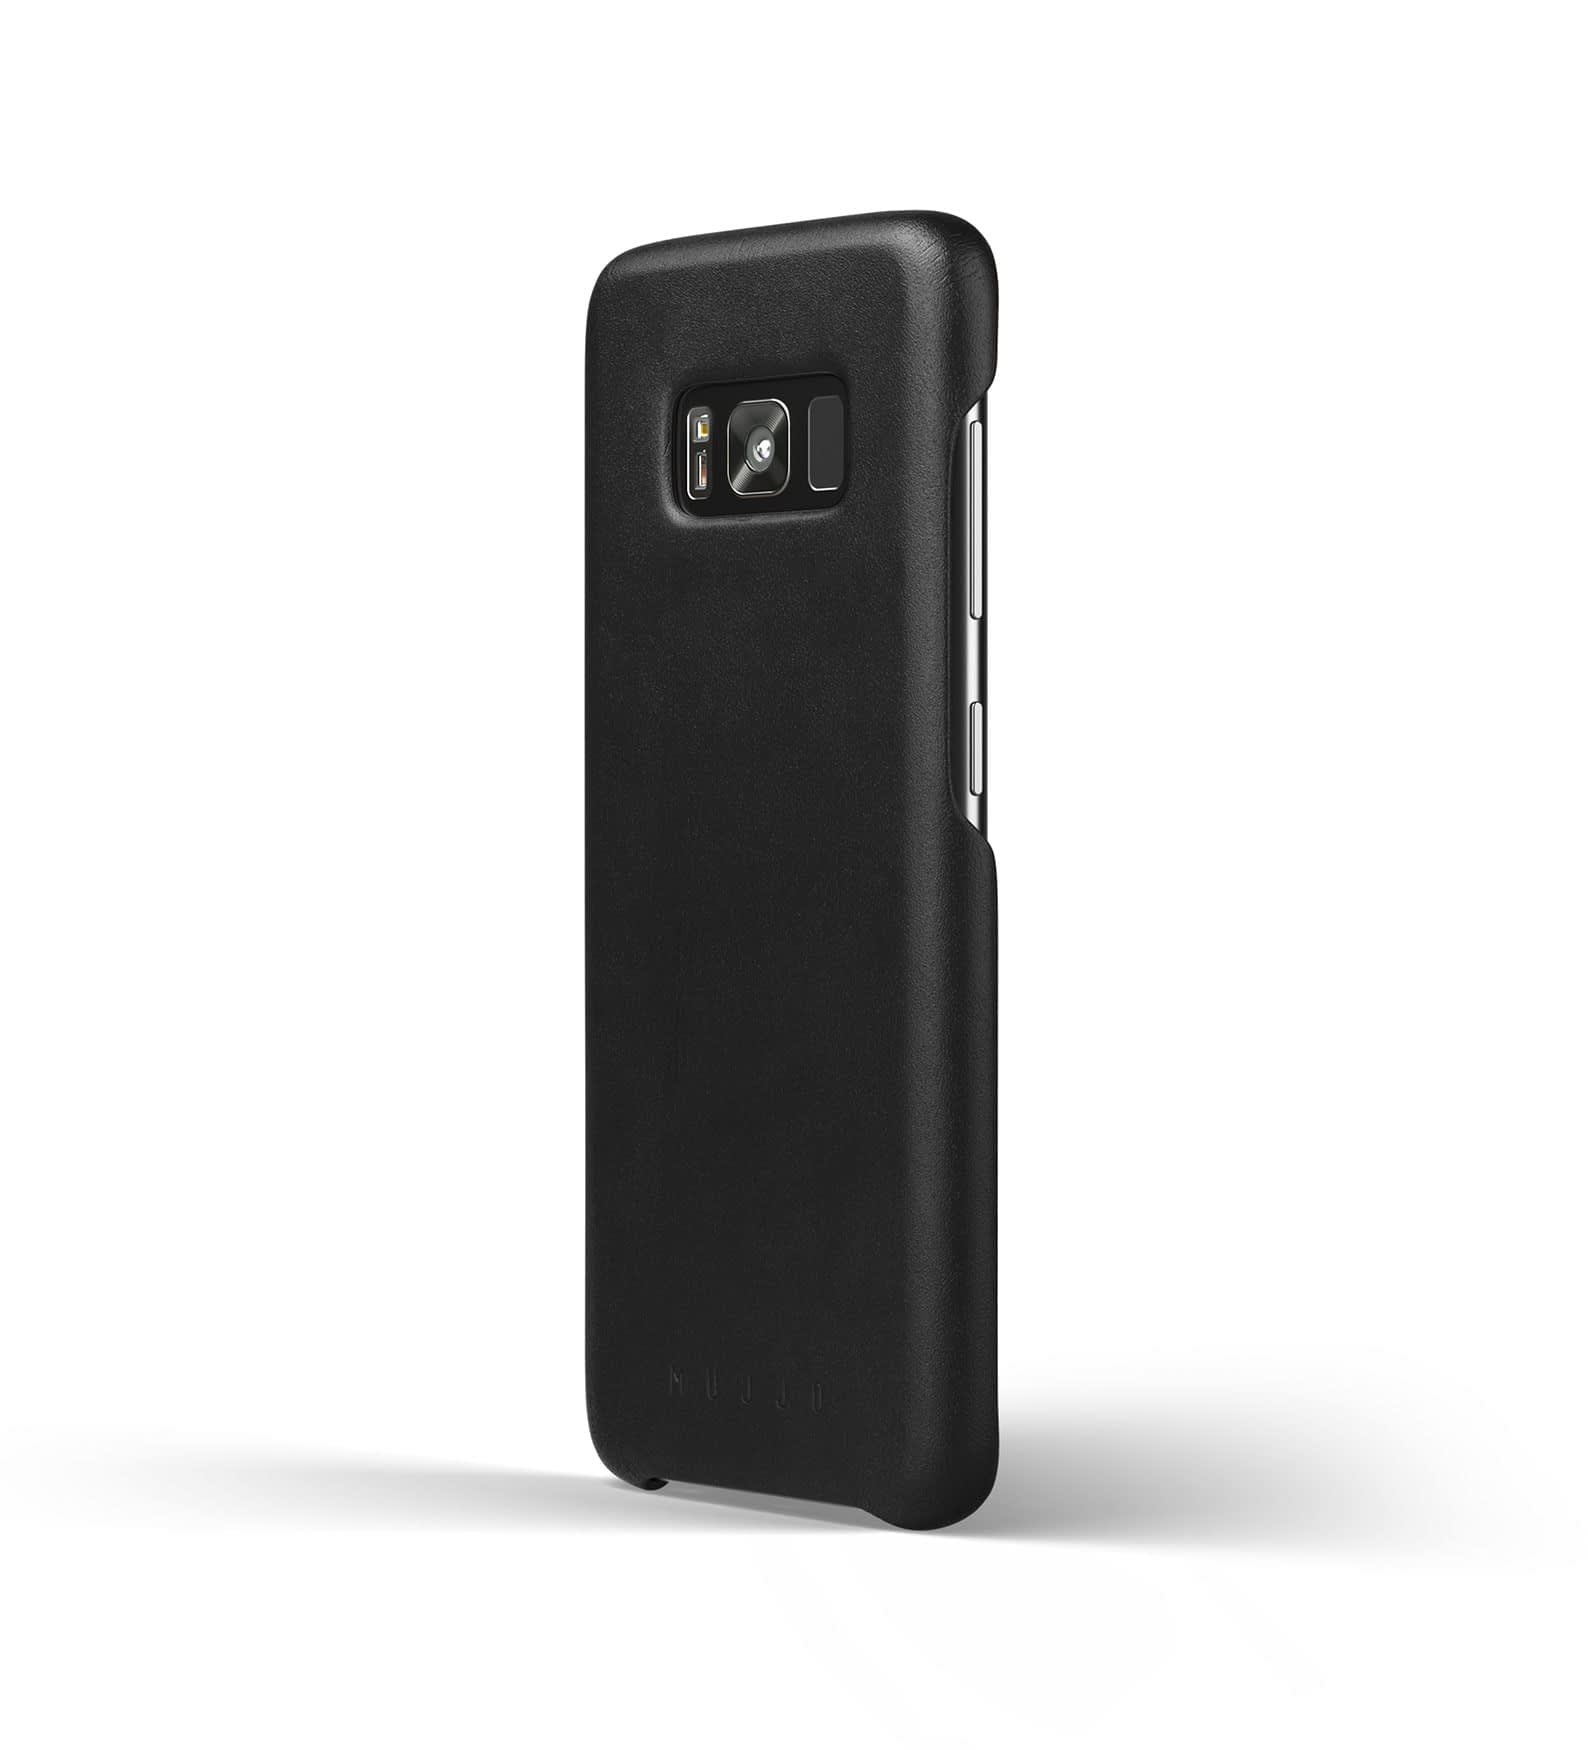 Leather case for Galaxy S8 Black Thumbnail 1